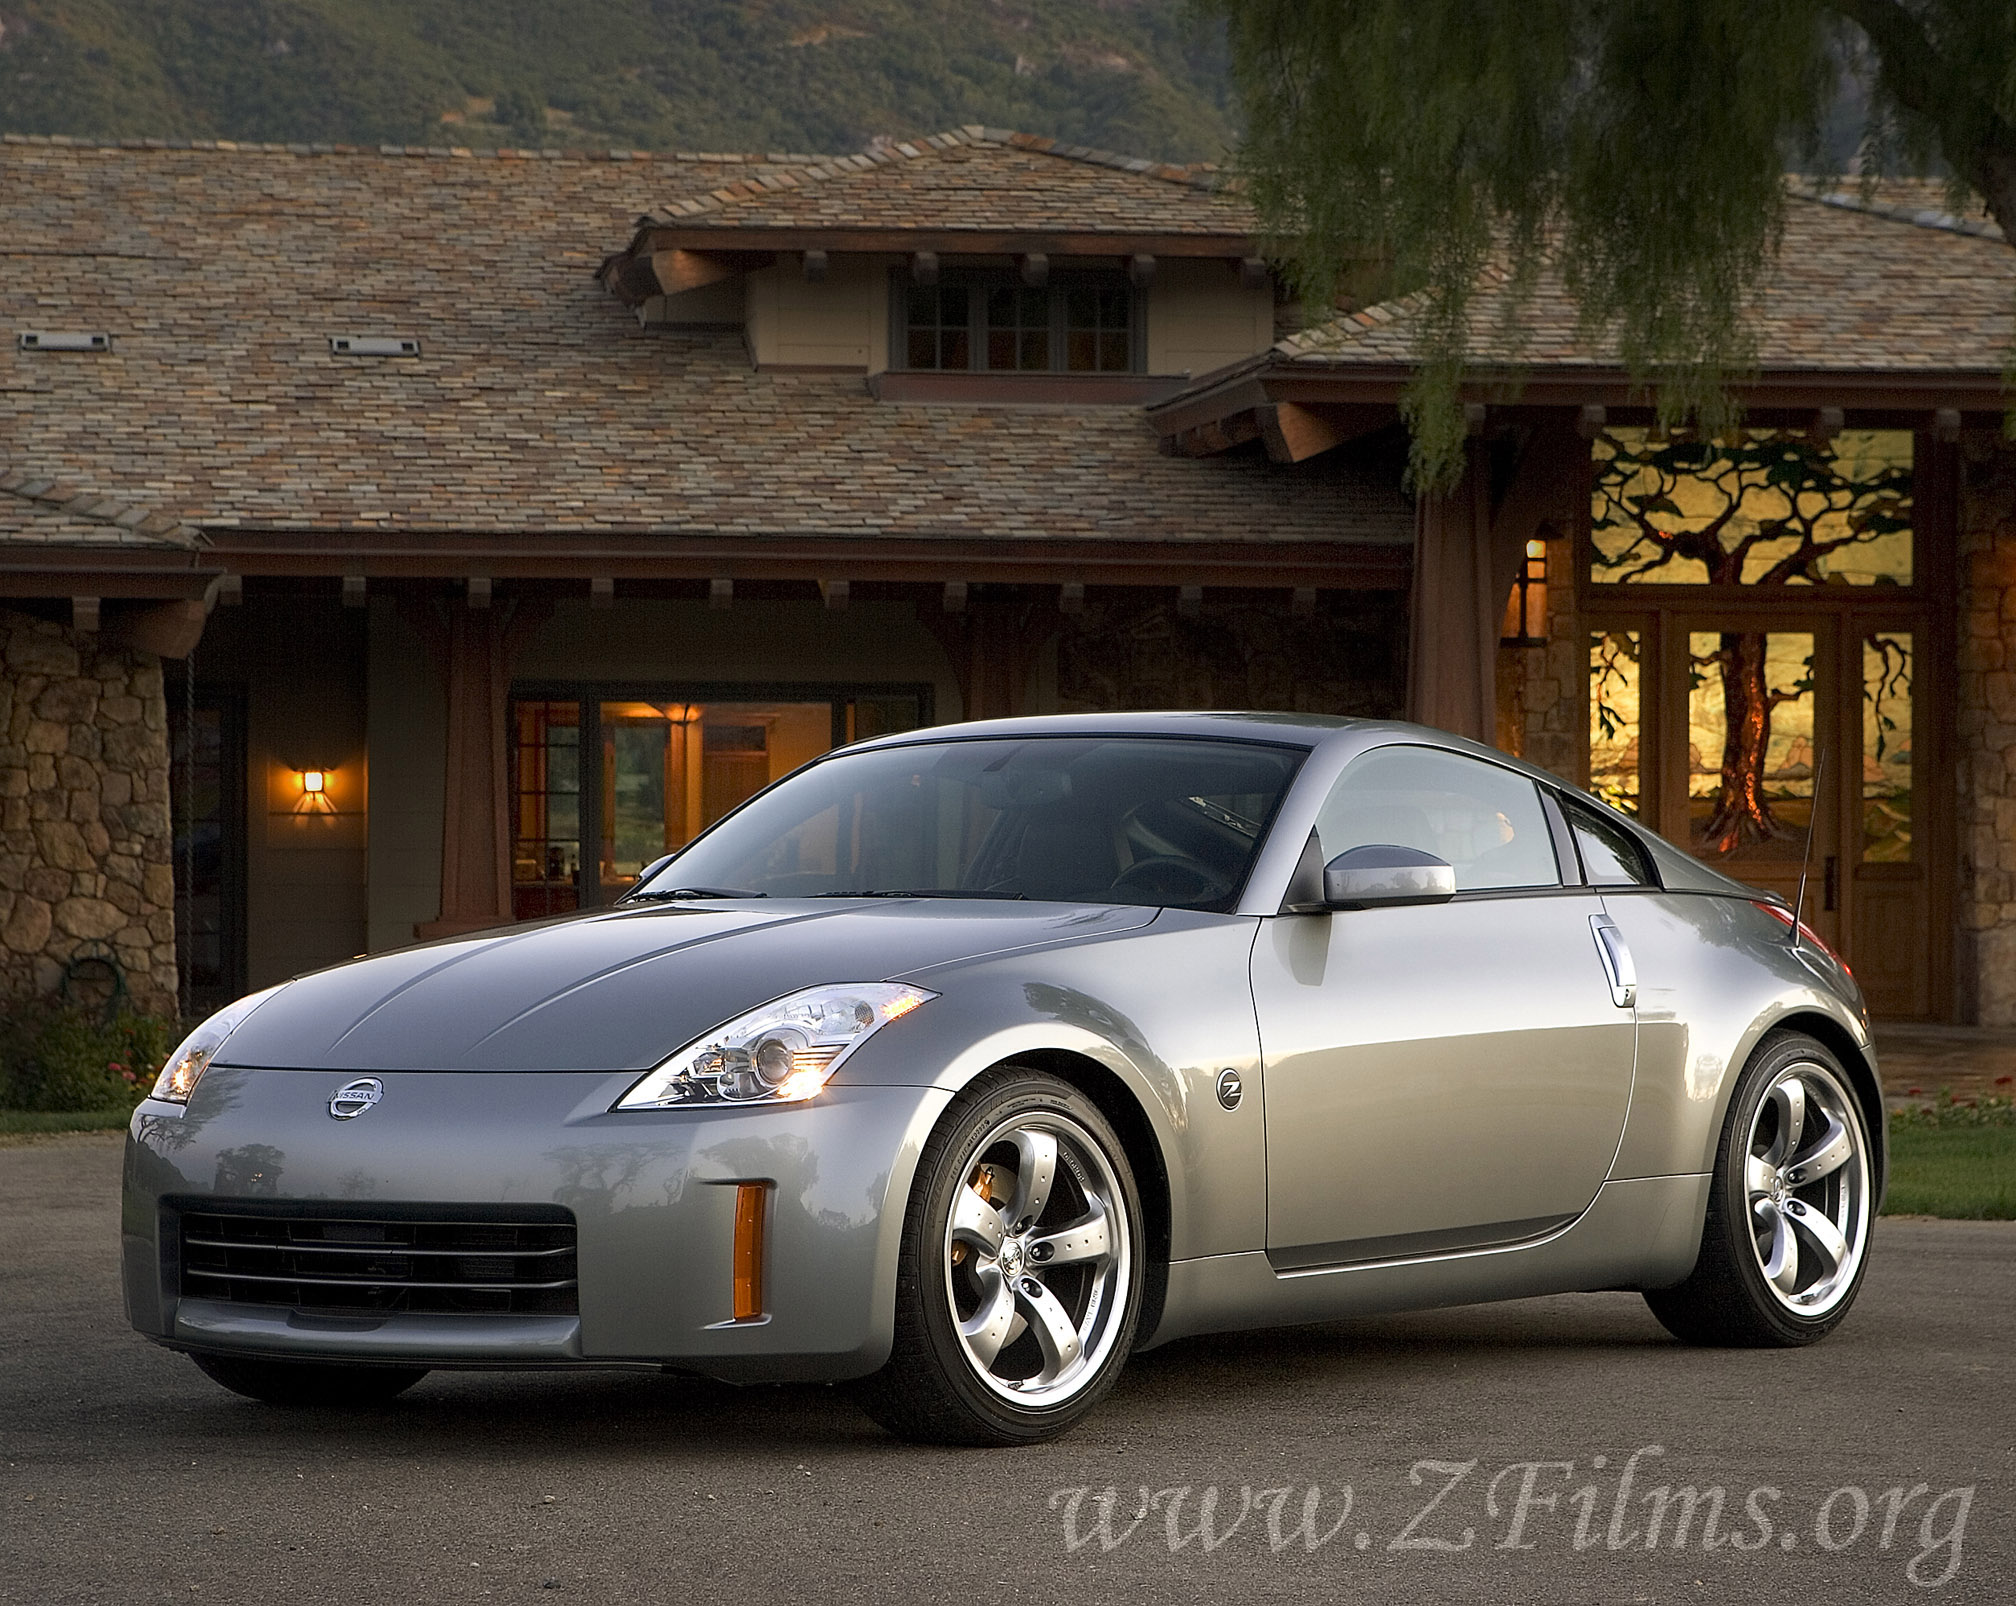 Nissan 350z Wallpapers Vehicles Hq Nissan 350z Pictures 4k Wallpapers 2019